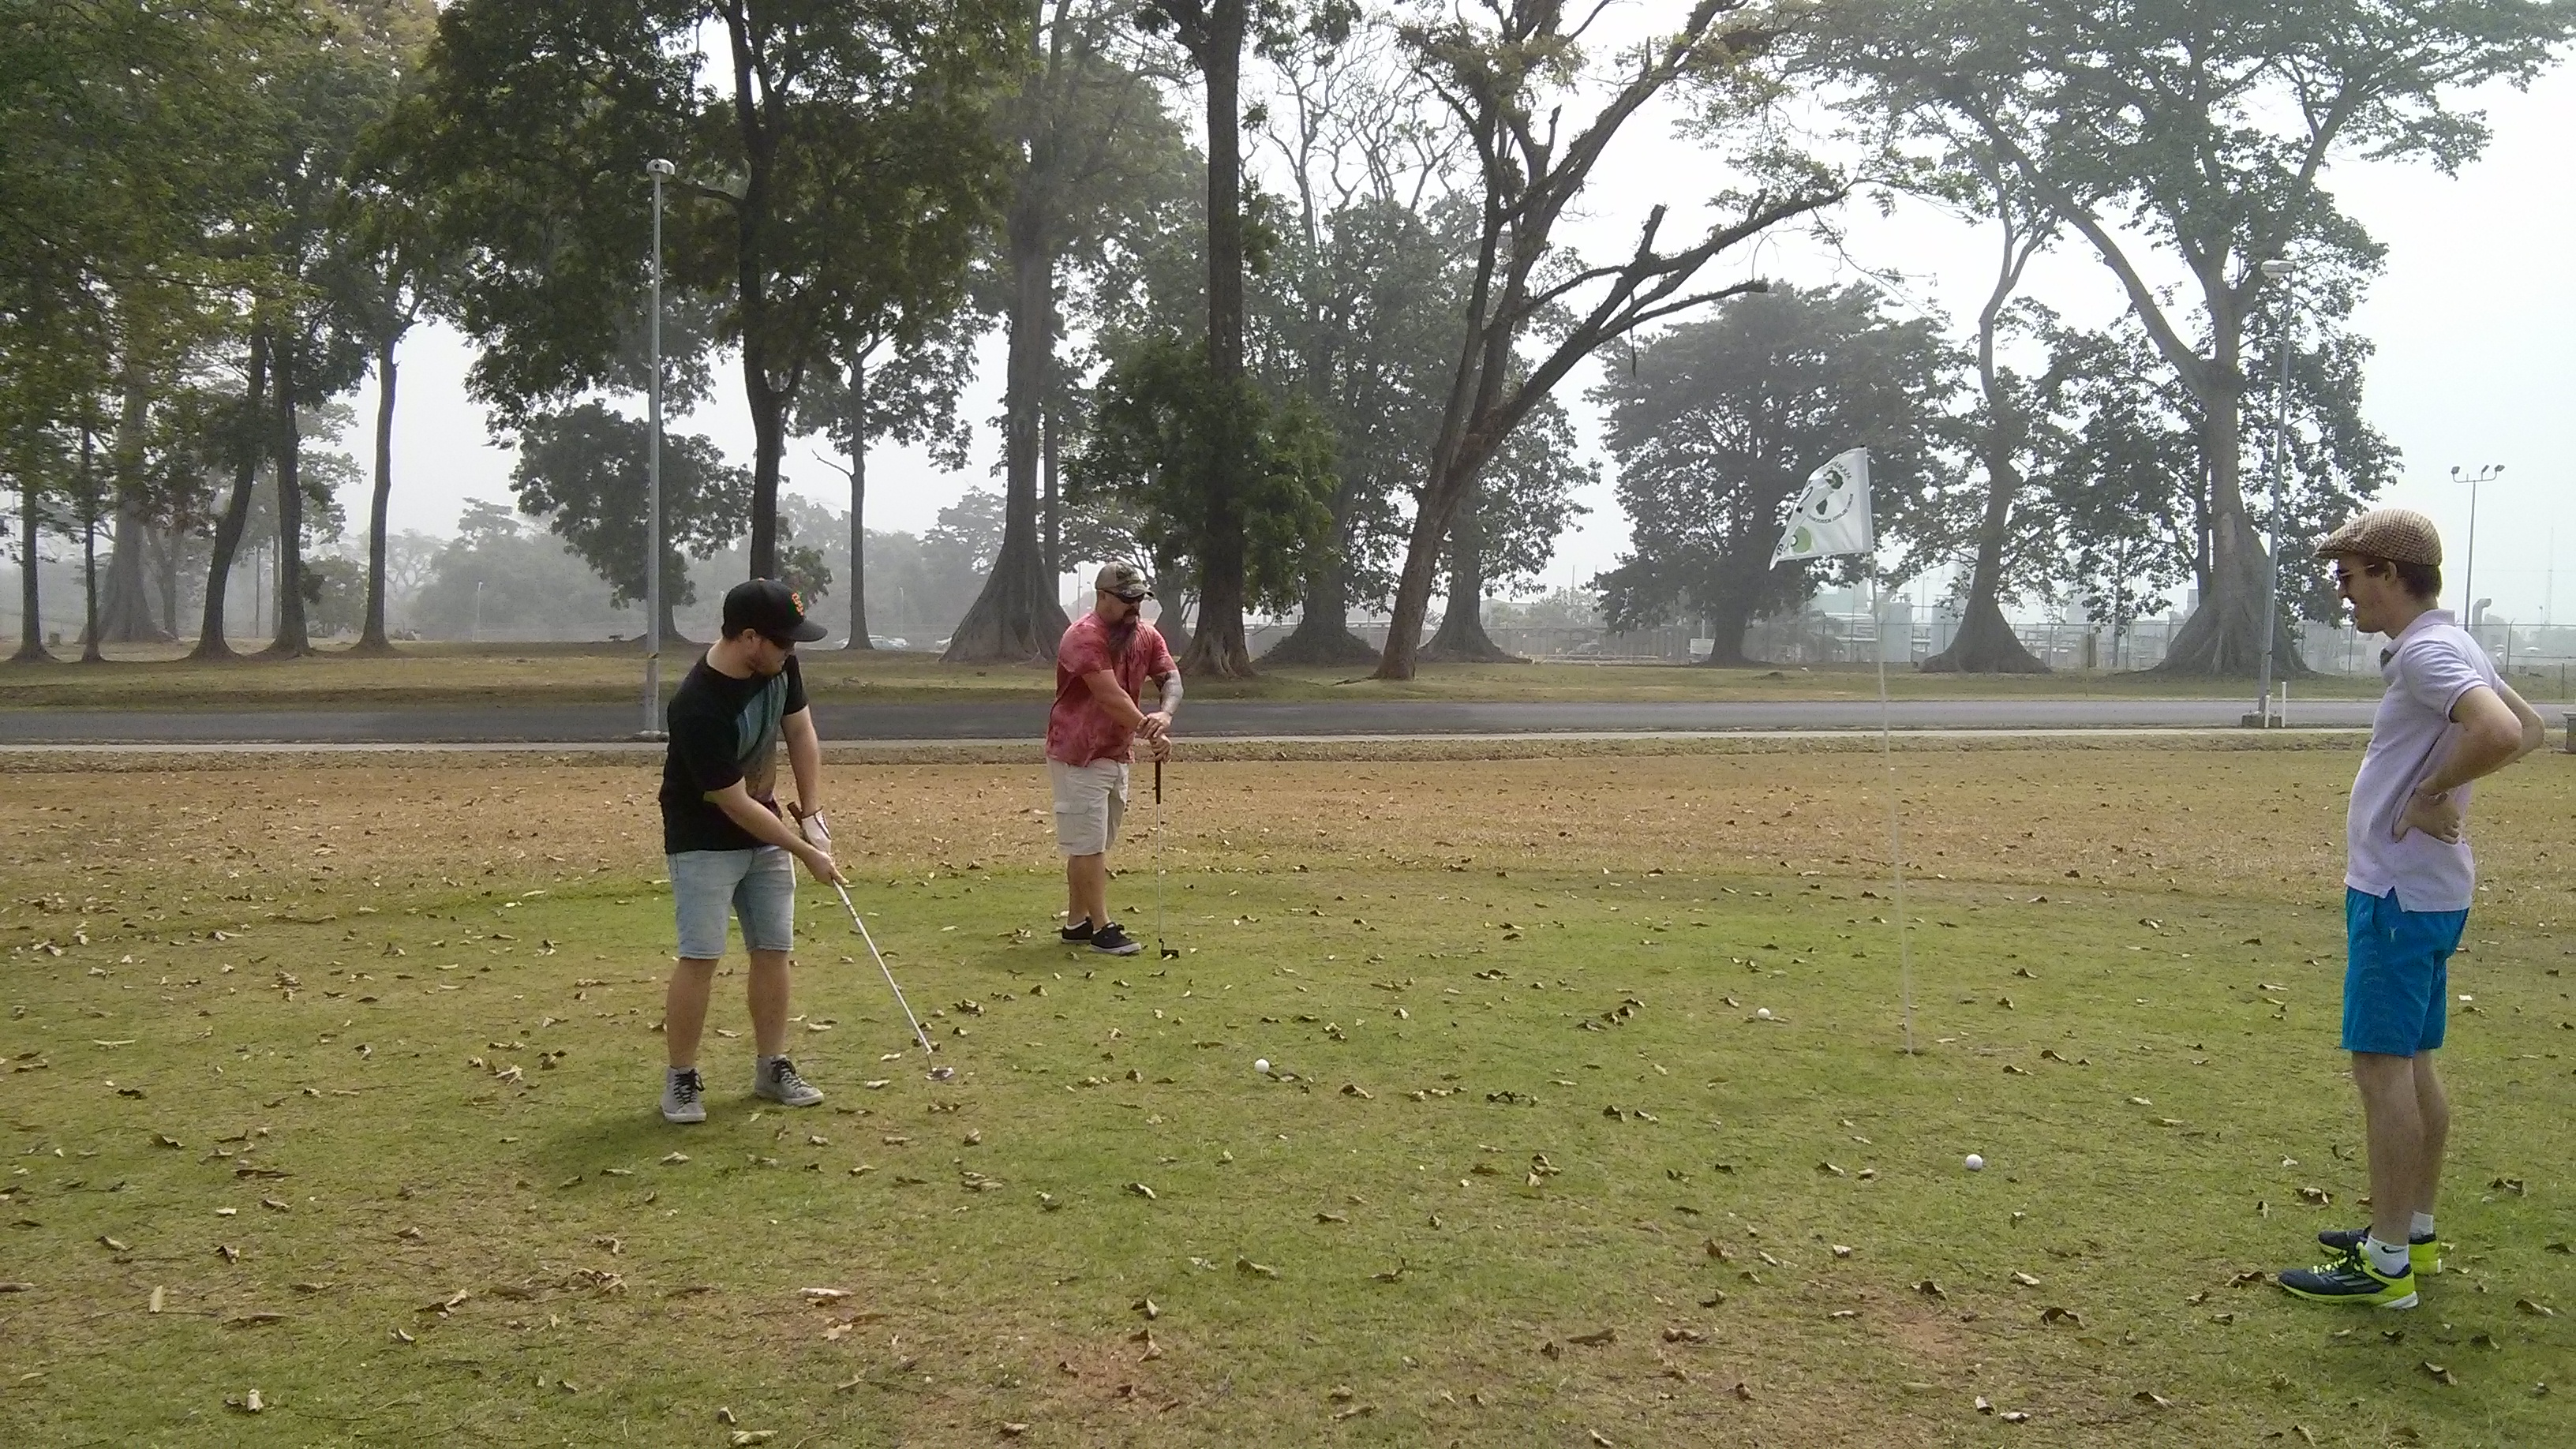 The Boys' golf afternoon